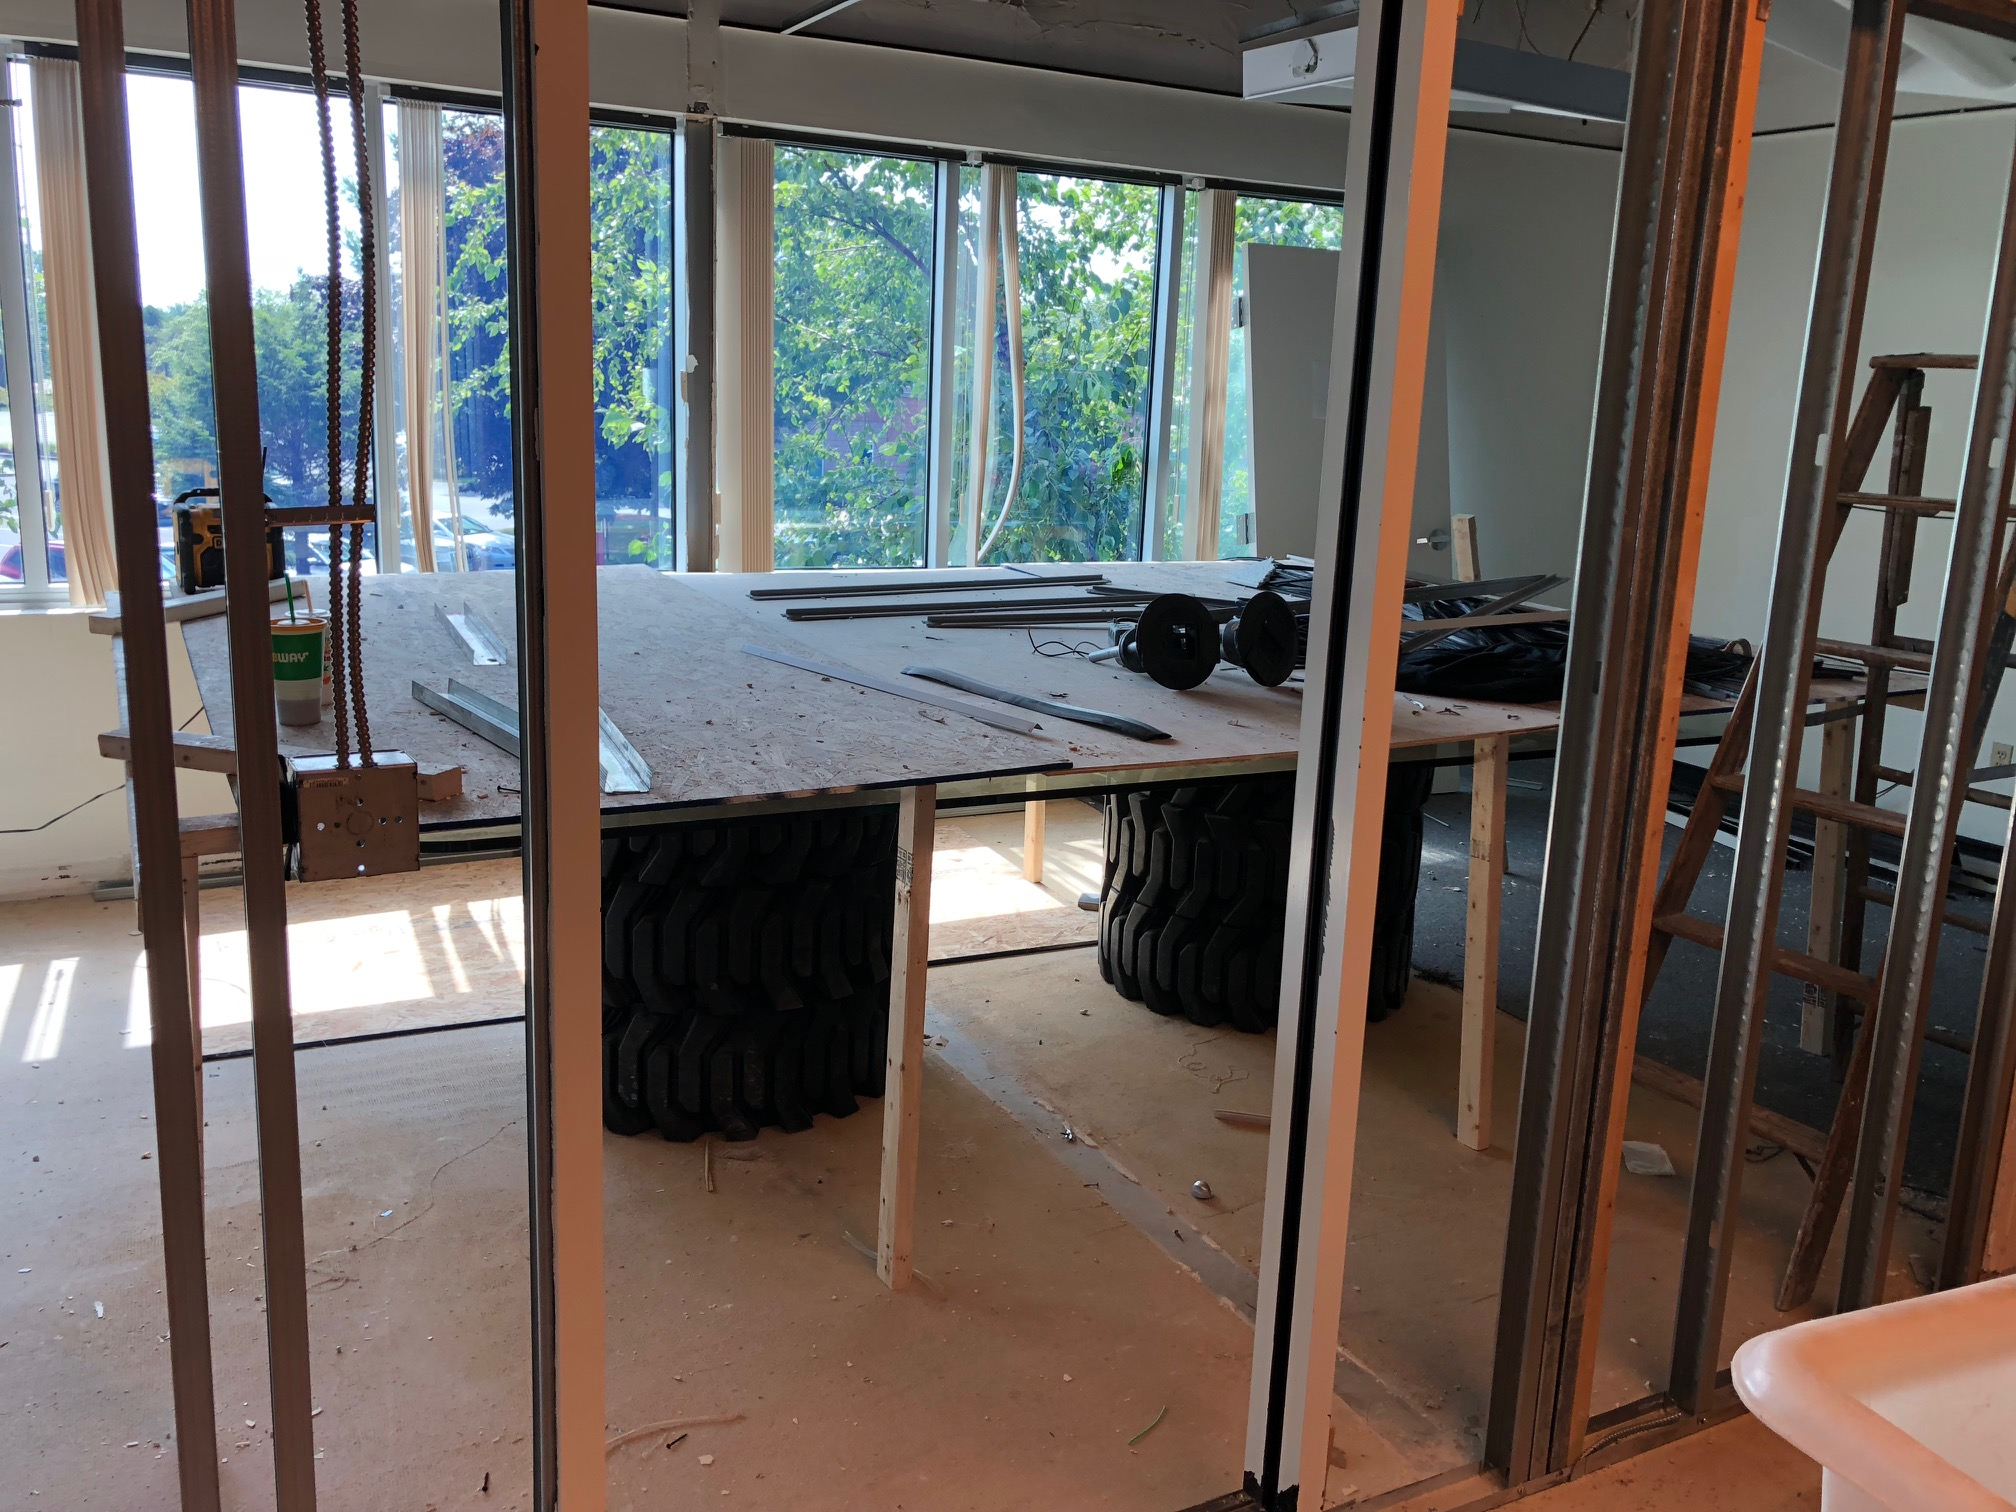 8-9-18 conference room to be made larger.jpg